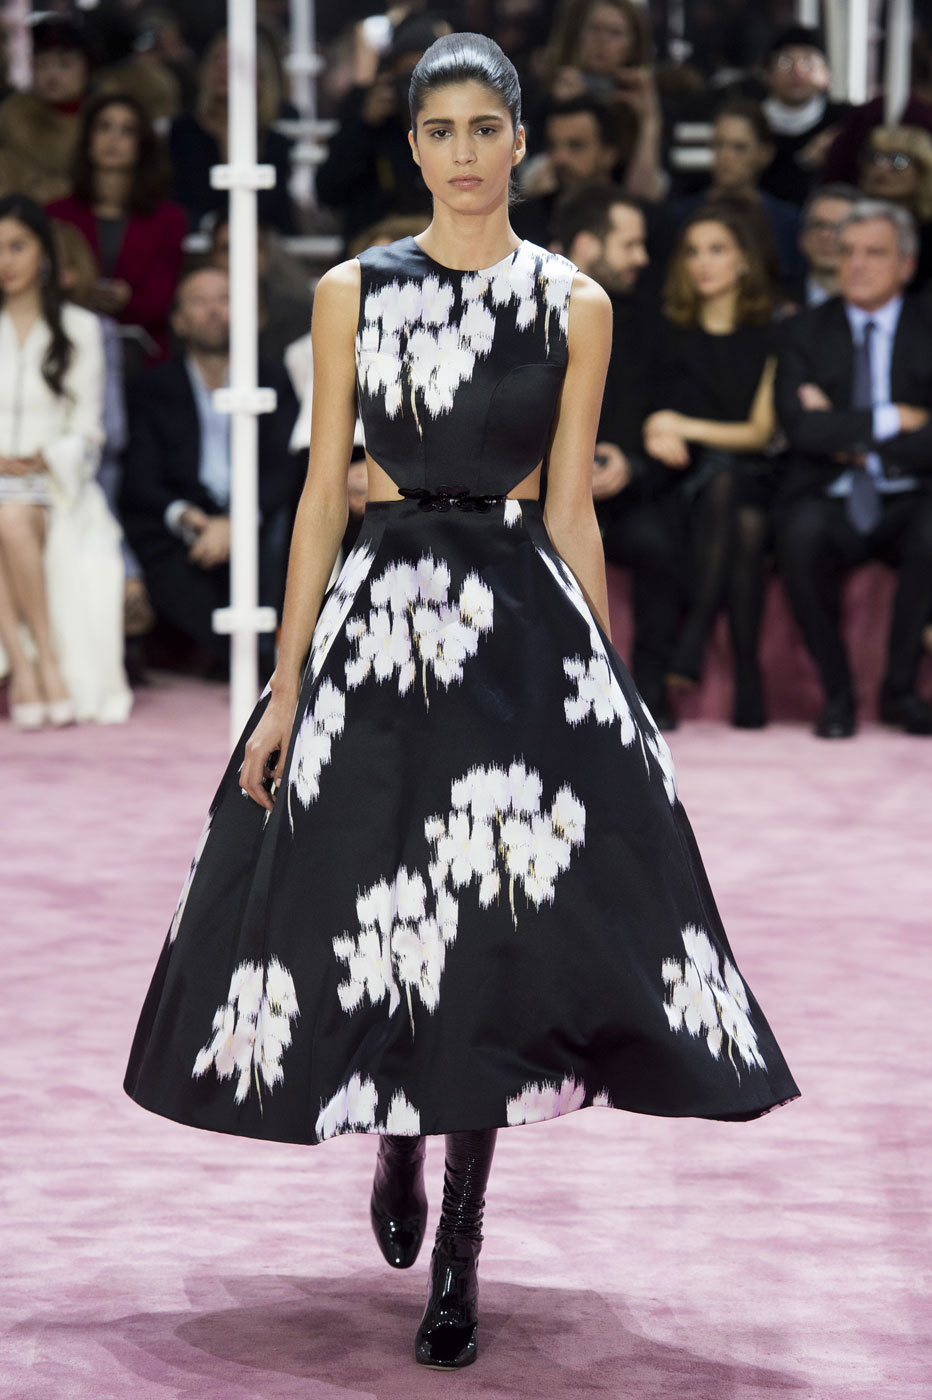 Christian-Dior-fashion-runway-show-haute-couture-paris-spring-summer-2015-the-impression-019